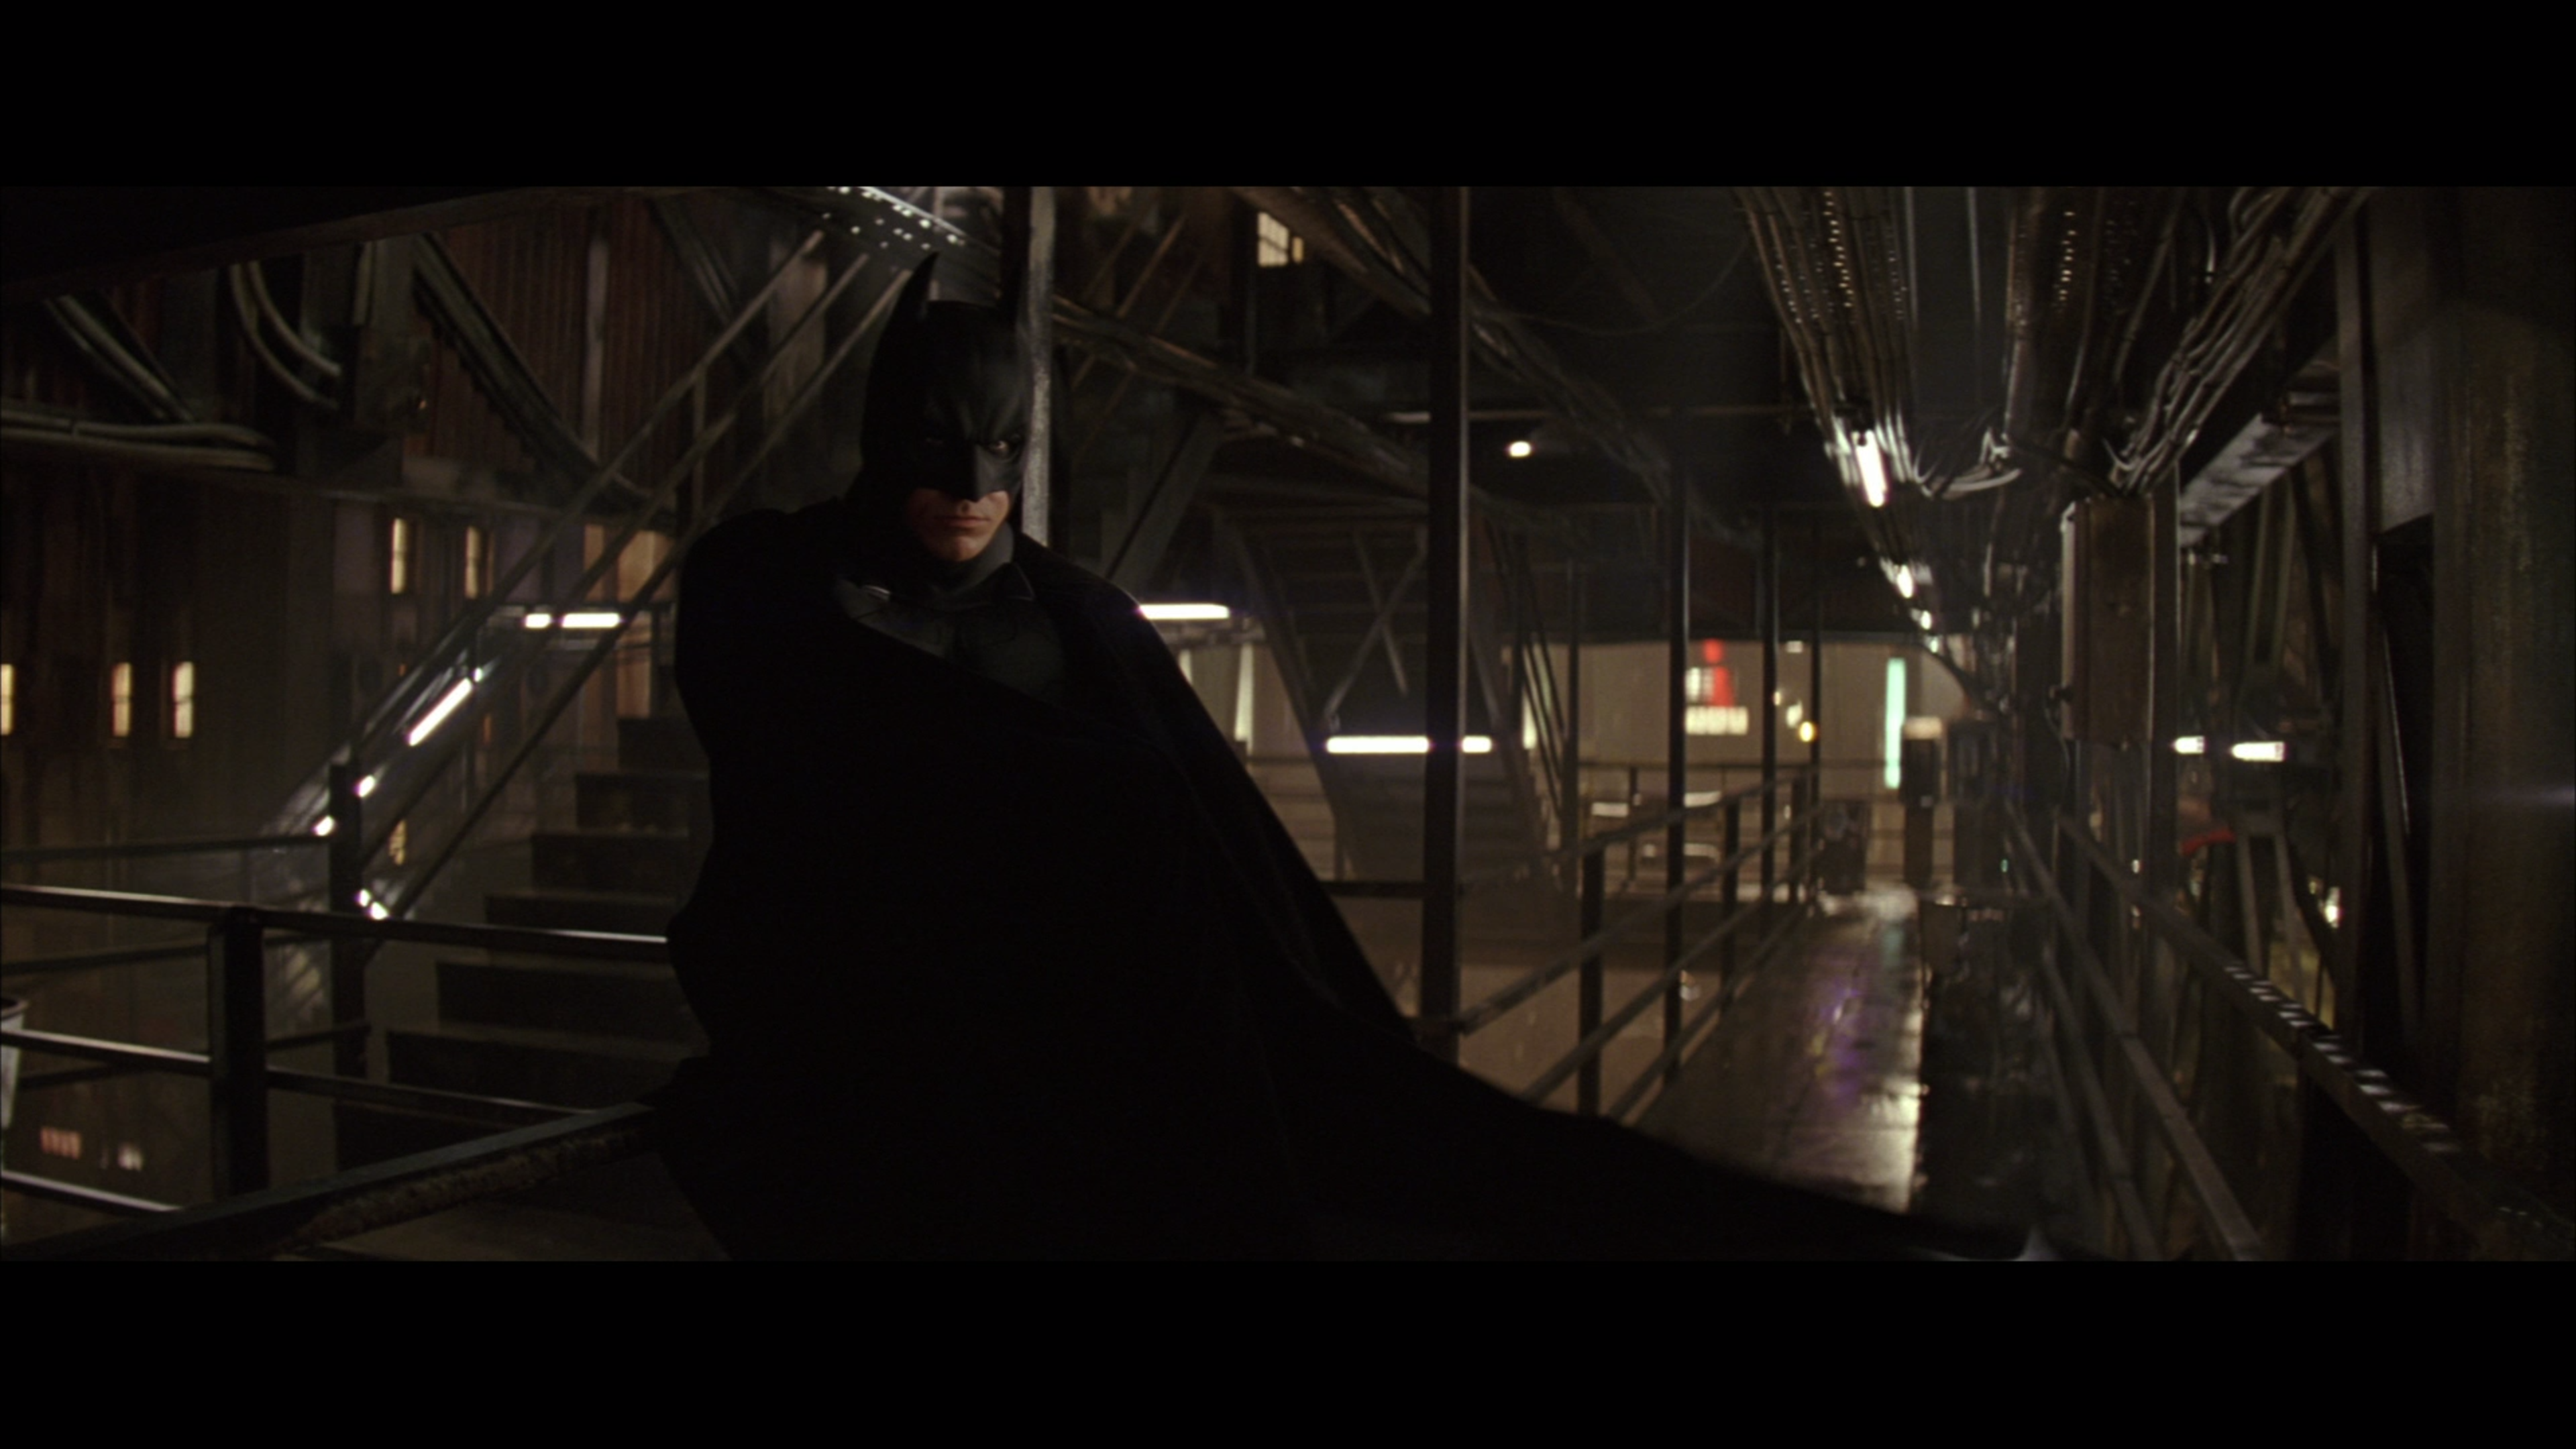 Batman begins 4k ultra hd blu ray ultra hd review high def digest for a more in depth take on the movie you can read our review of the blu ray sdr here voltagebd Image collections